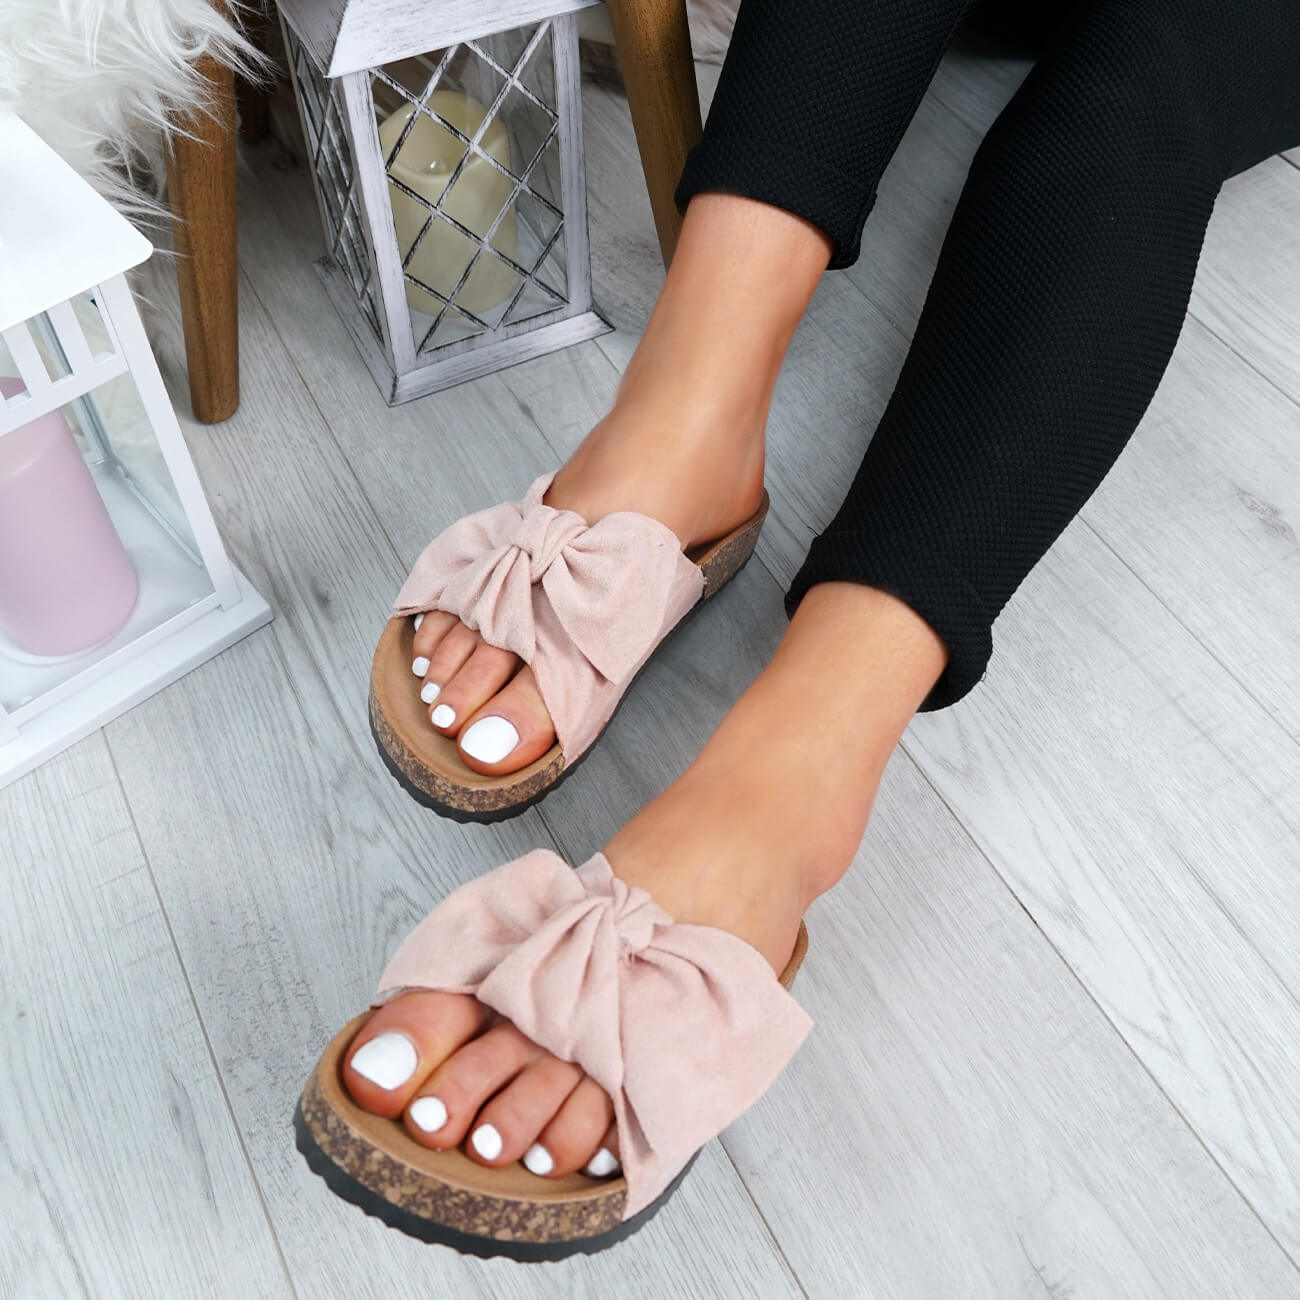 WOMENS-LADIES-SLIP-ON-FLAT-SANDALS-BOW-SLIDERS-SUMMER-CASUAL-SHOES-SIZE thumbnail 32